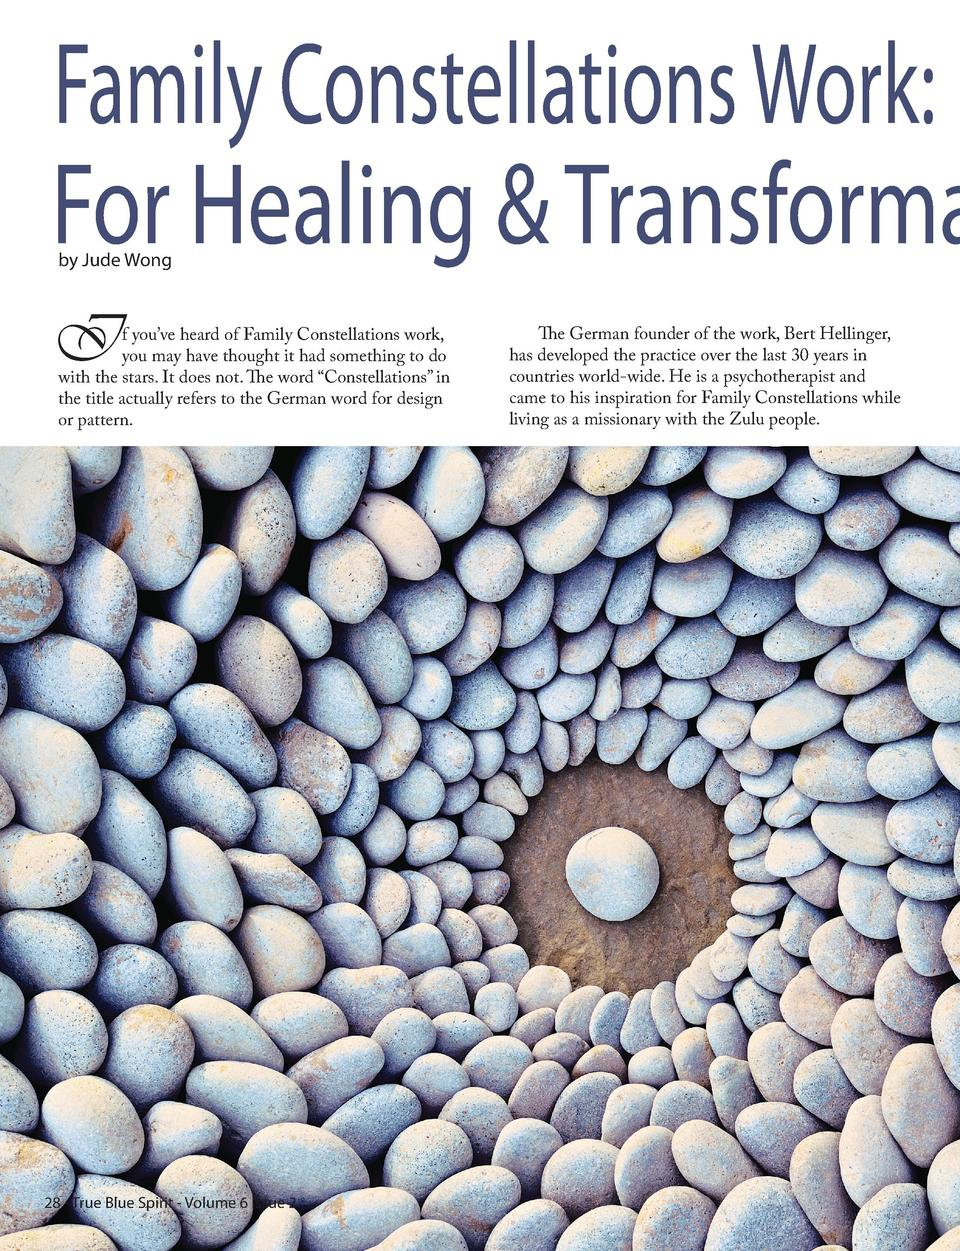 Family Constellations Work  For Healing   Transforma by Jude Wong  I  f you   ve heard of Family Constellations work, you ...